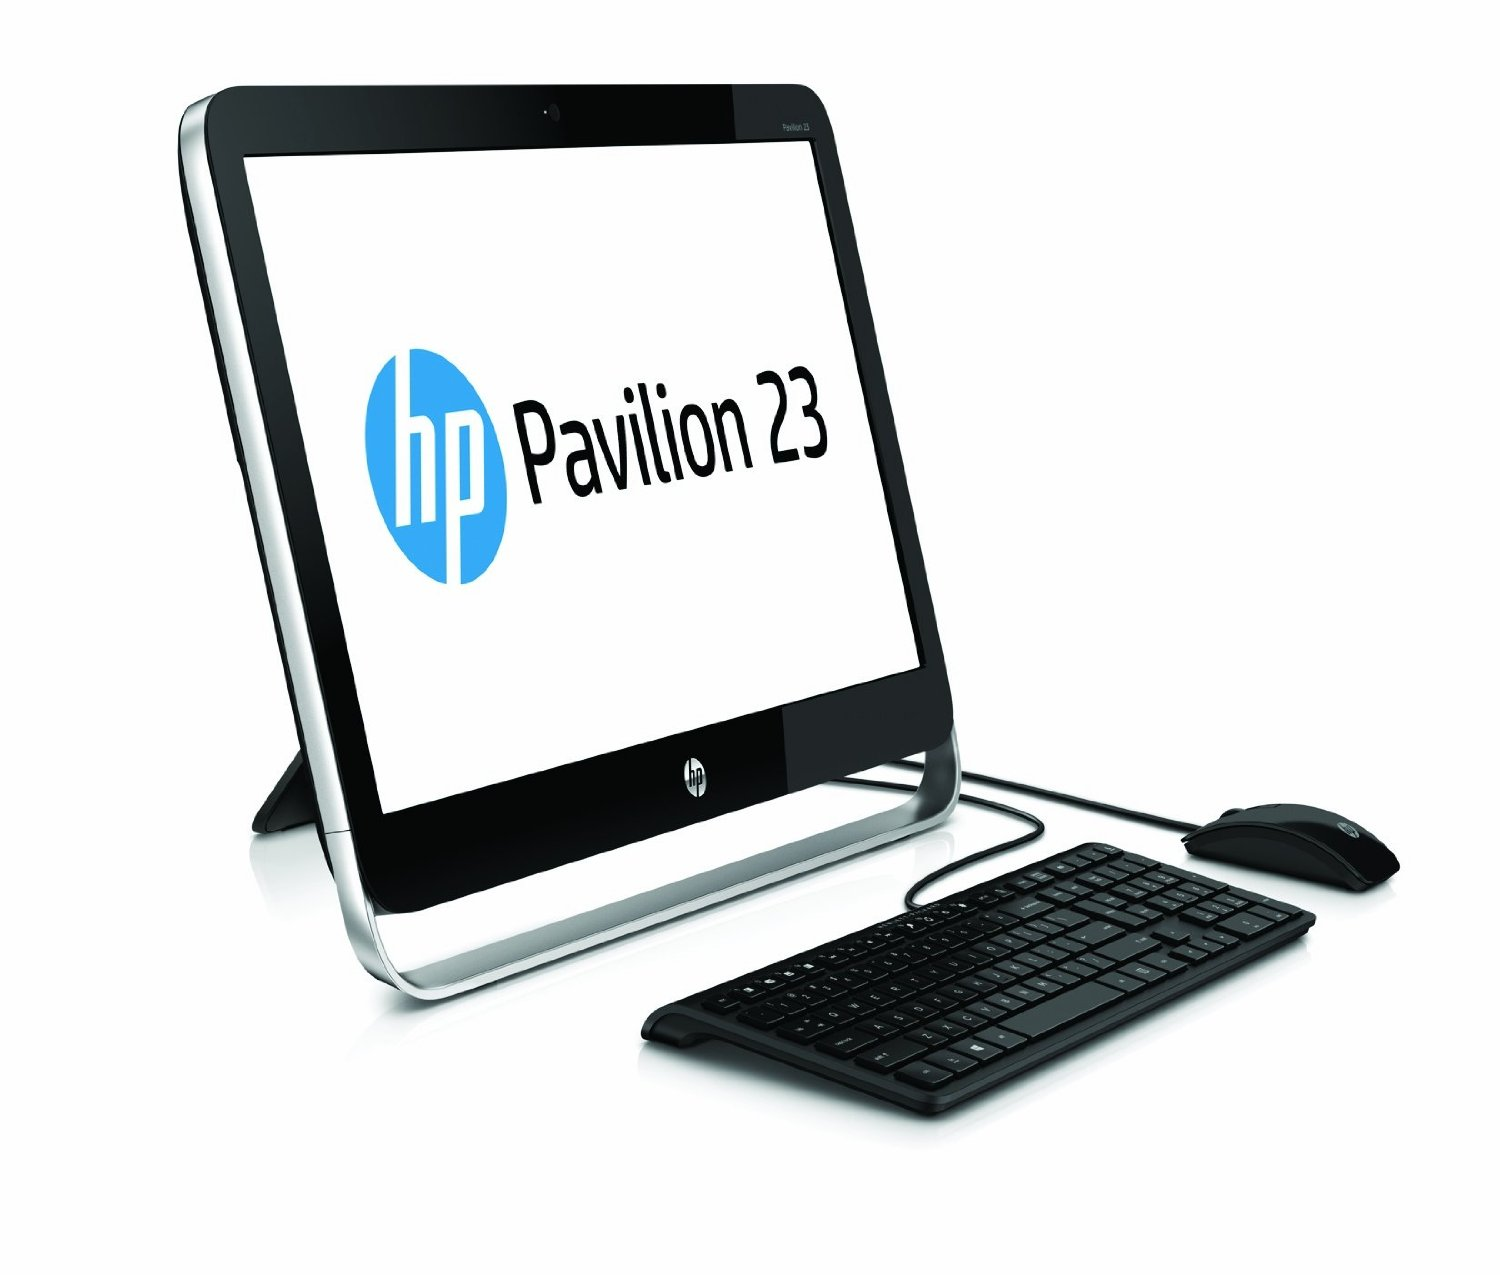 HP Pavilion 23-Inch All-in-One Desktop